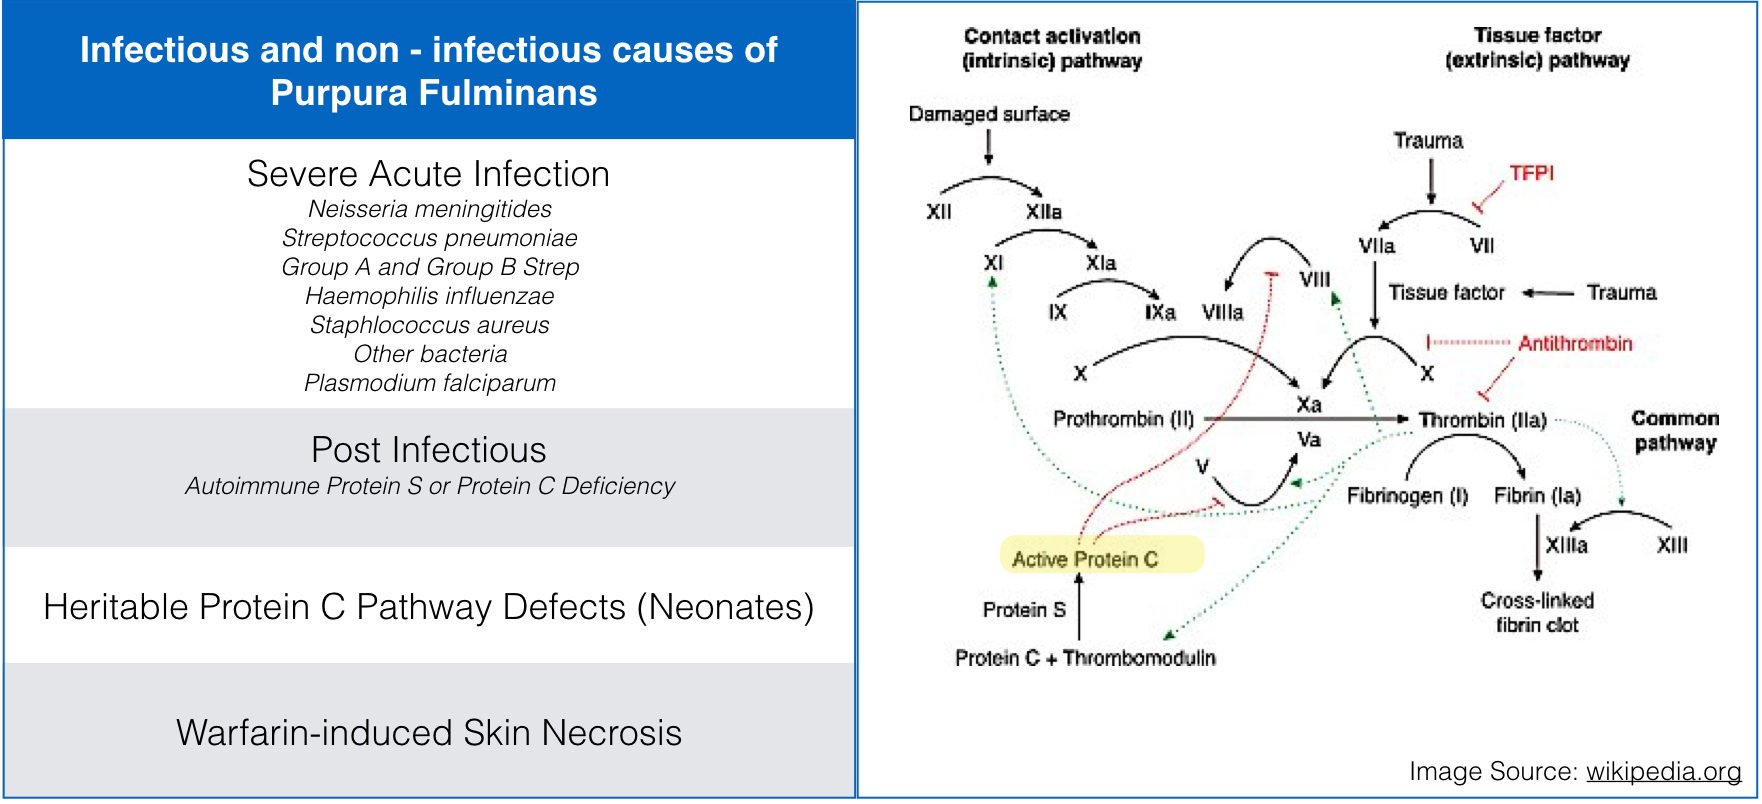 Protein C deficiency is the final common pathway of the multiple etiologies of Purpura Fulminans, including congenital, infectious, autoimmune, and drug-induced causes .